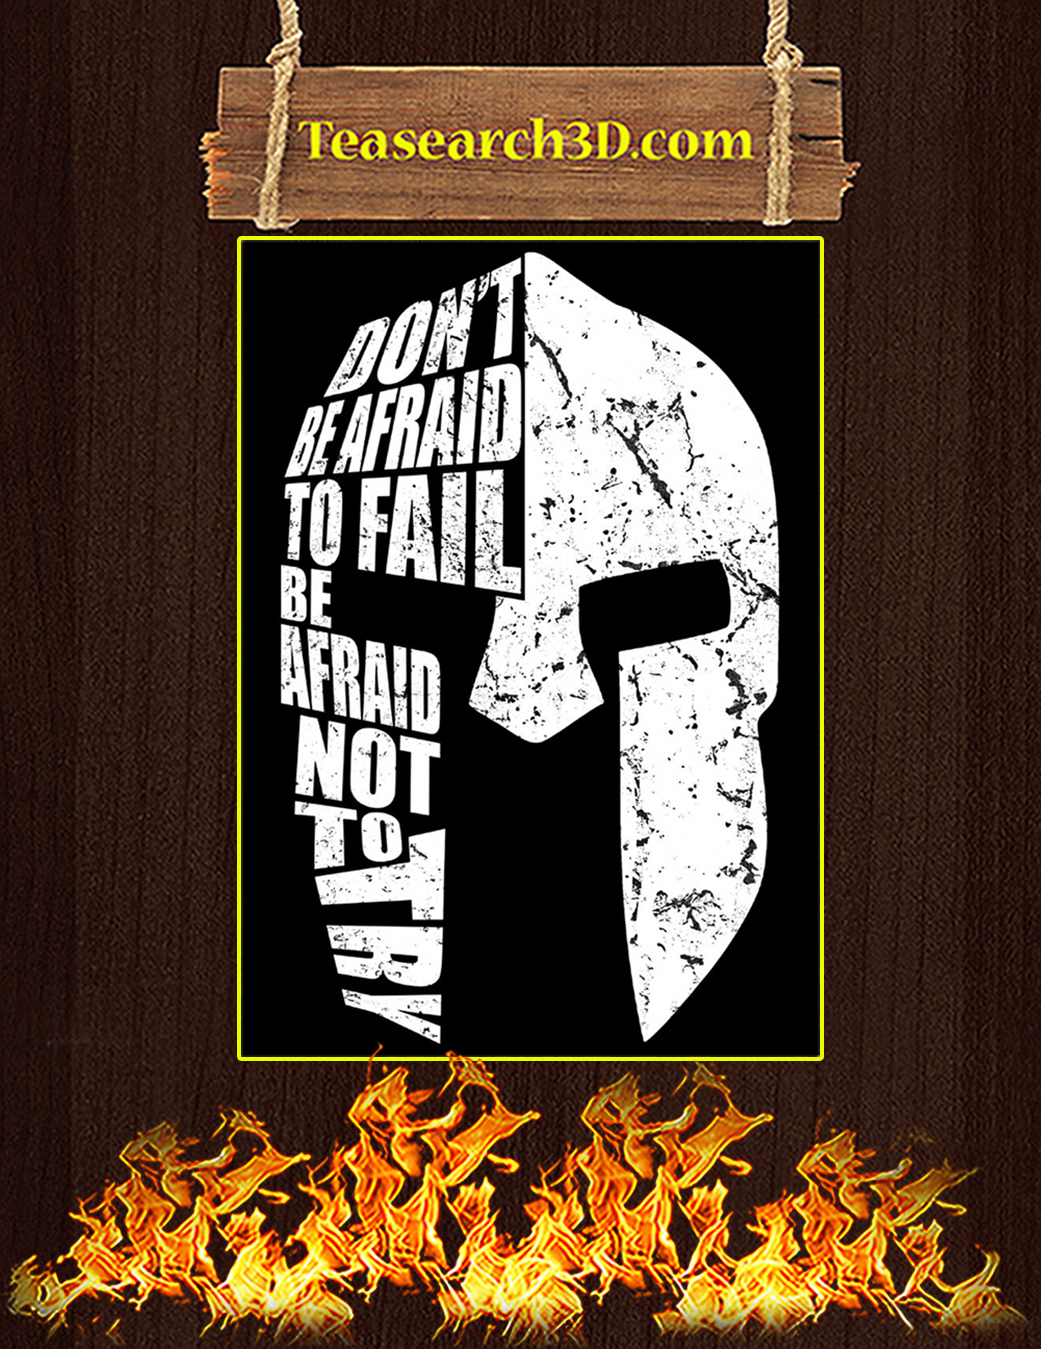 Spartan don't be afraid to fail be afraid not to try poster A1